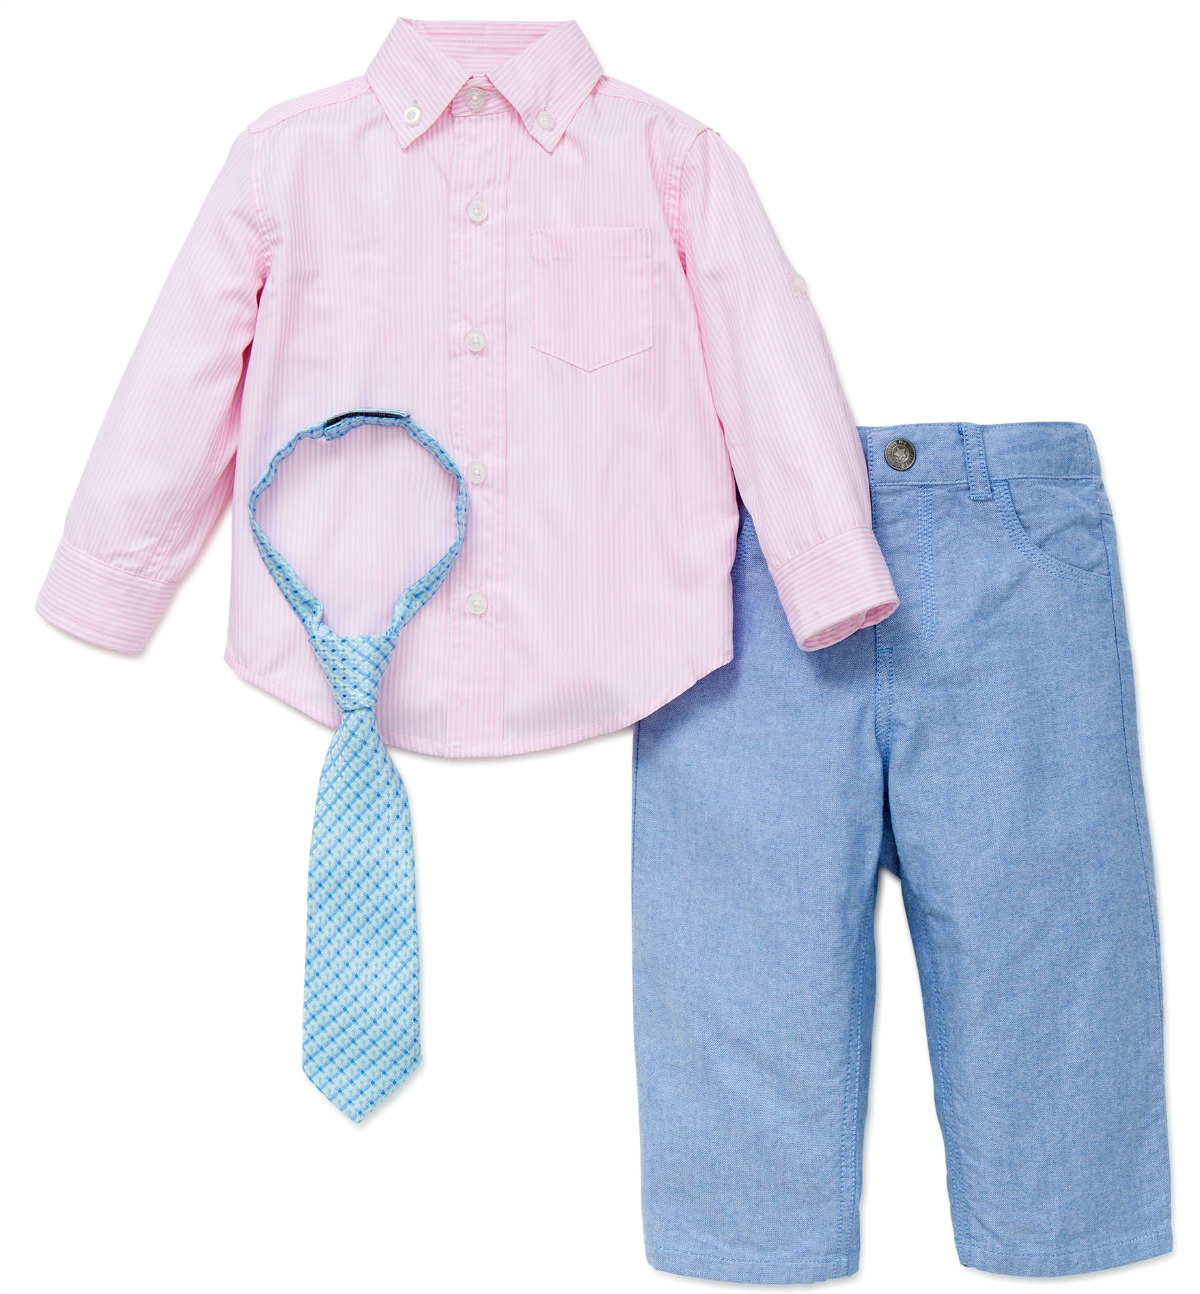 29f61d971 LIttle Me Boys PInk Oxford Shirt Tie and Pant Set